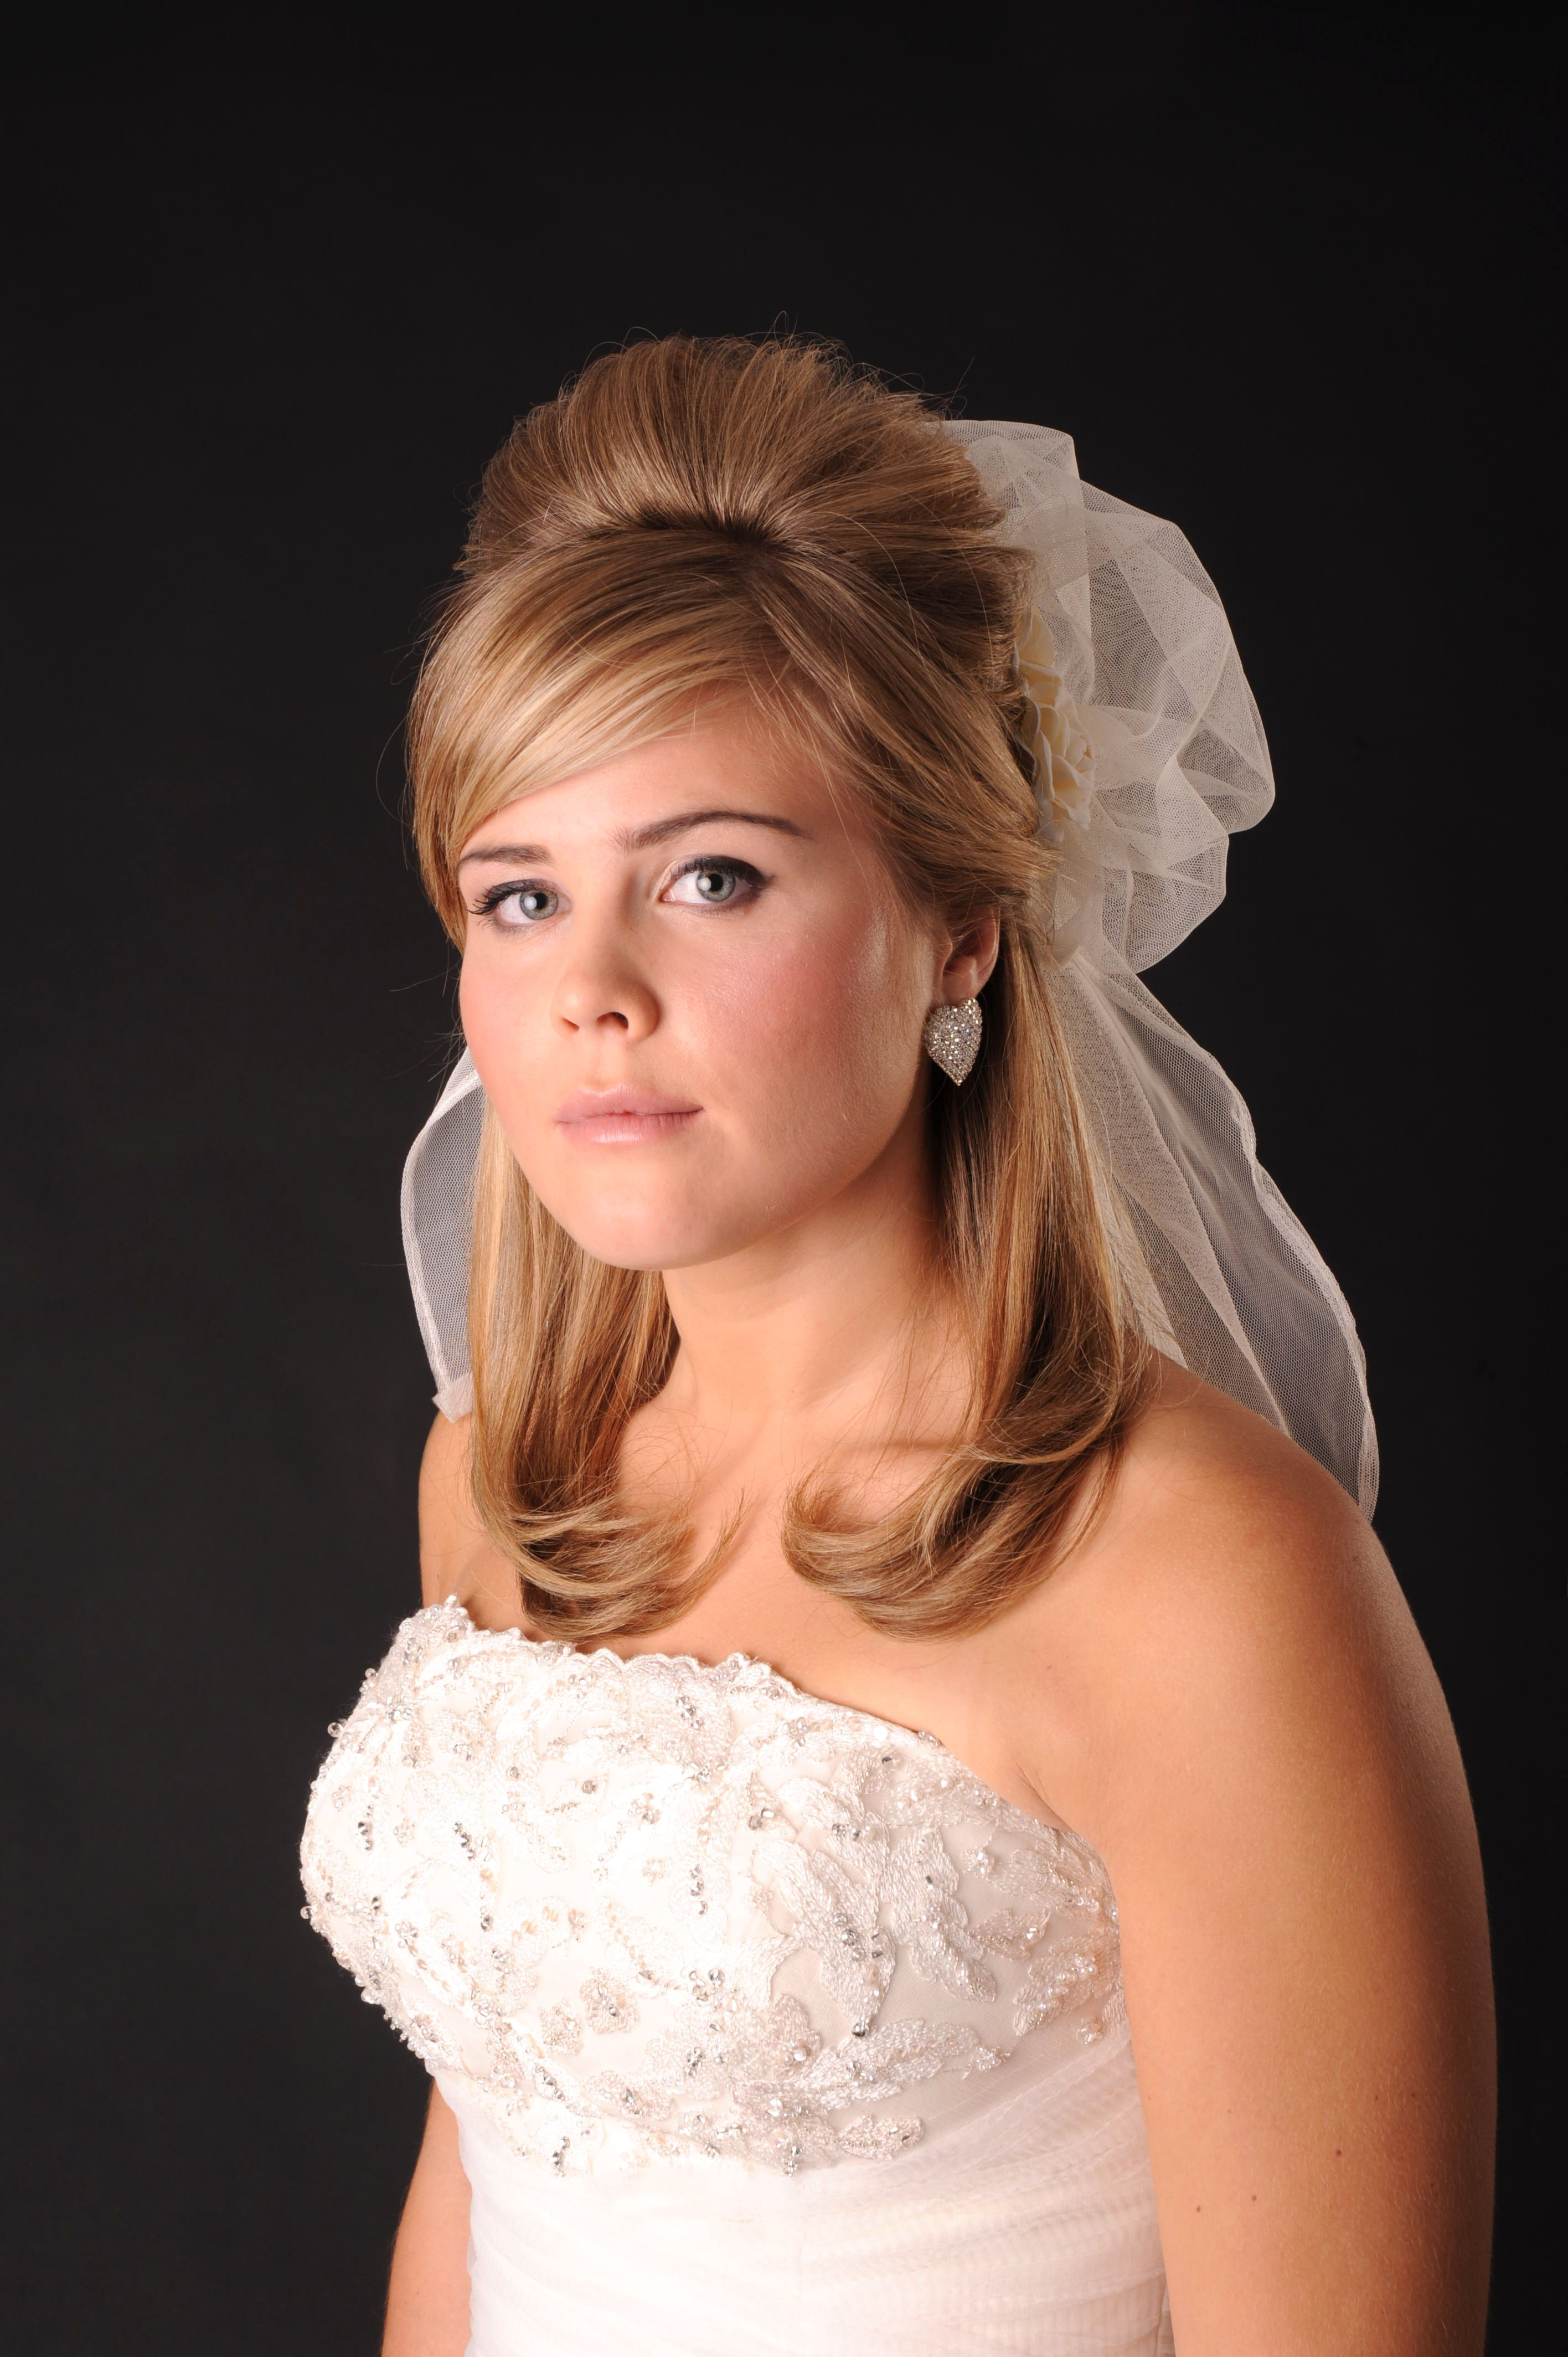 classic bridal hairdo with veil | our wedding hairstyles